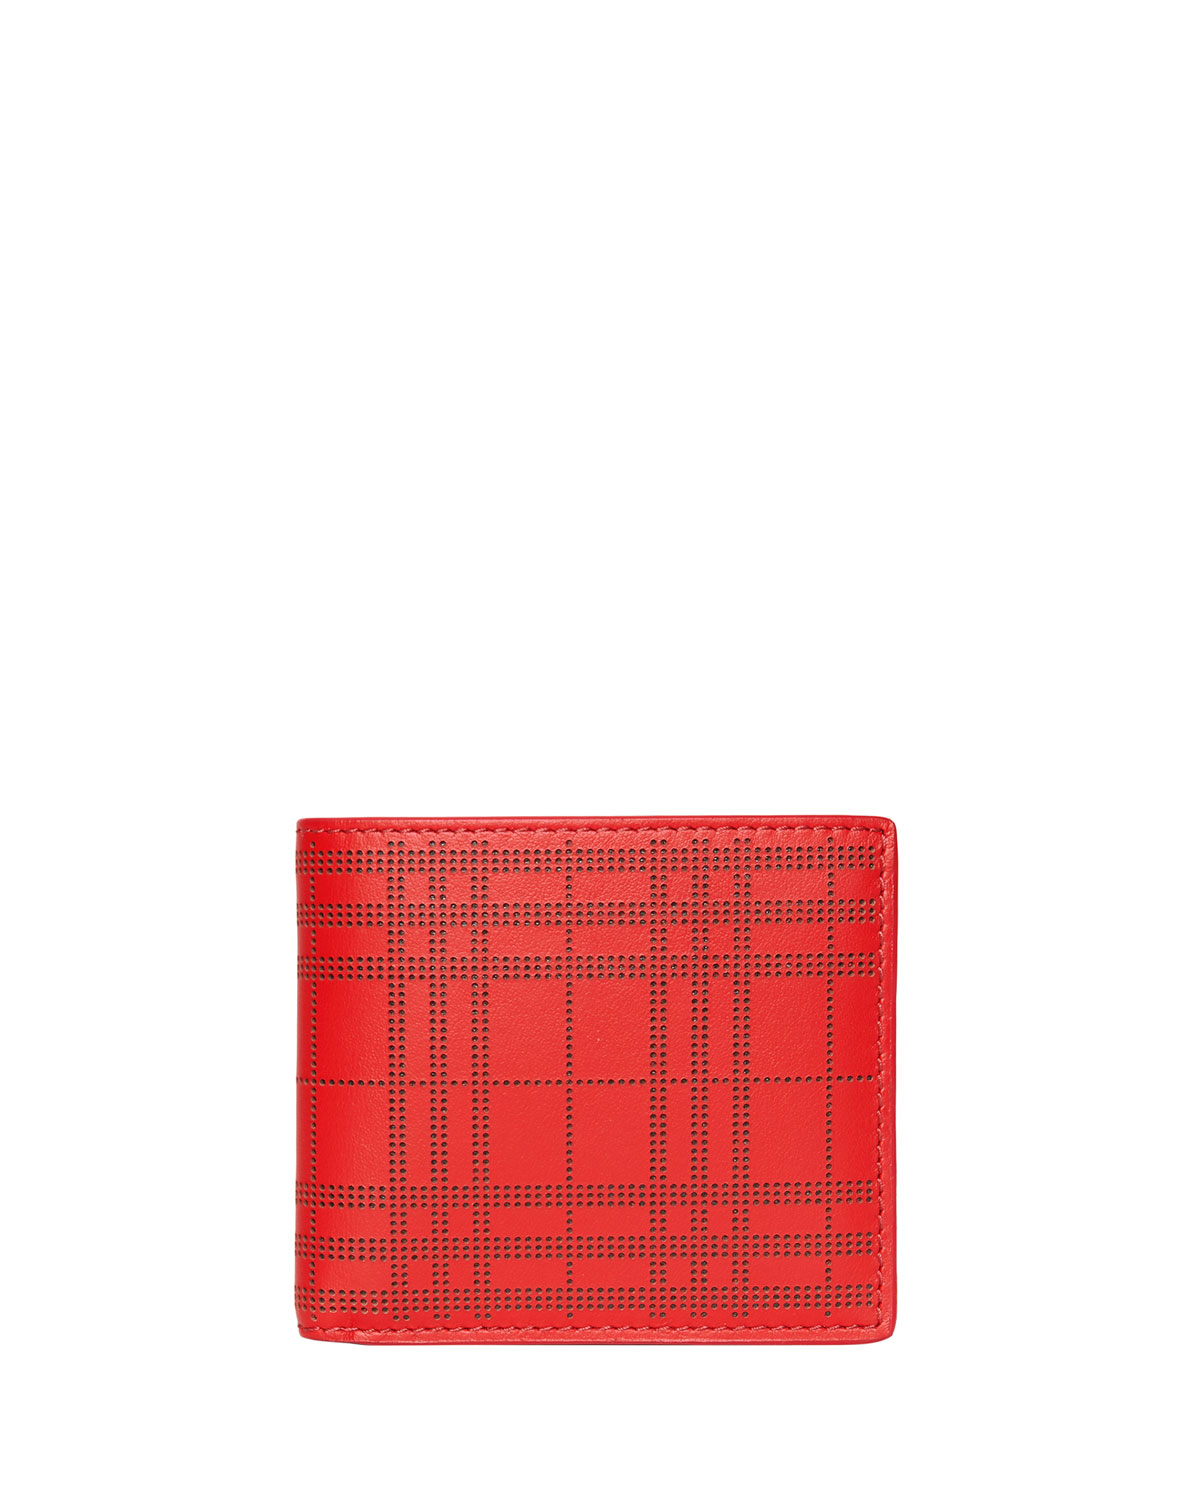 977a82d0732 Burberry Men s Perforated Check Bi-Fold Leather Wallet